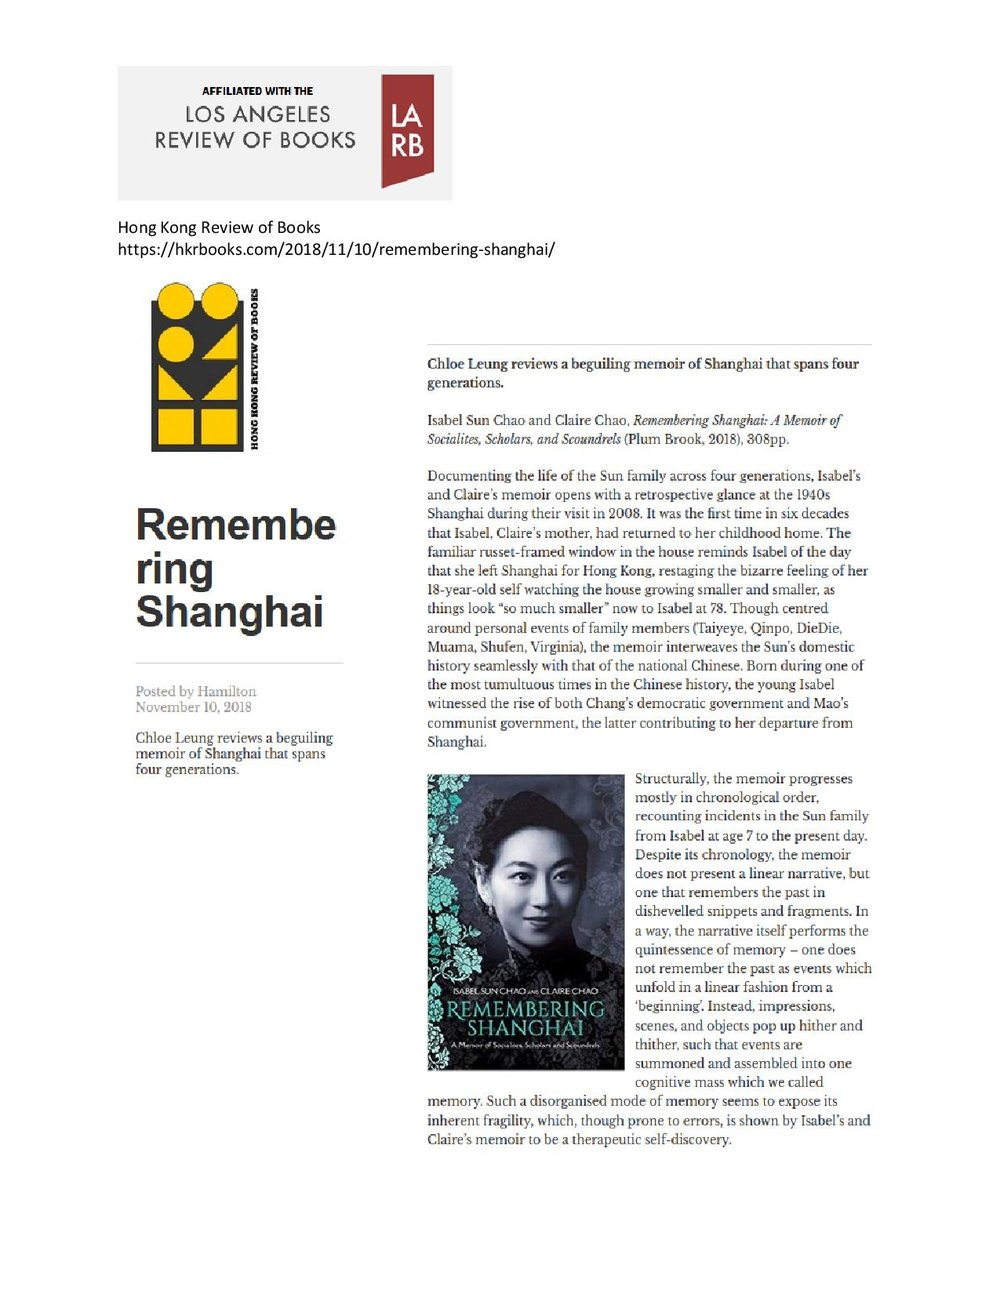 Hong Kong Review of Books,  November 2018